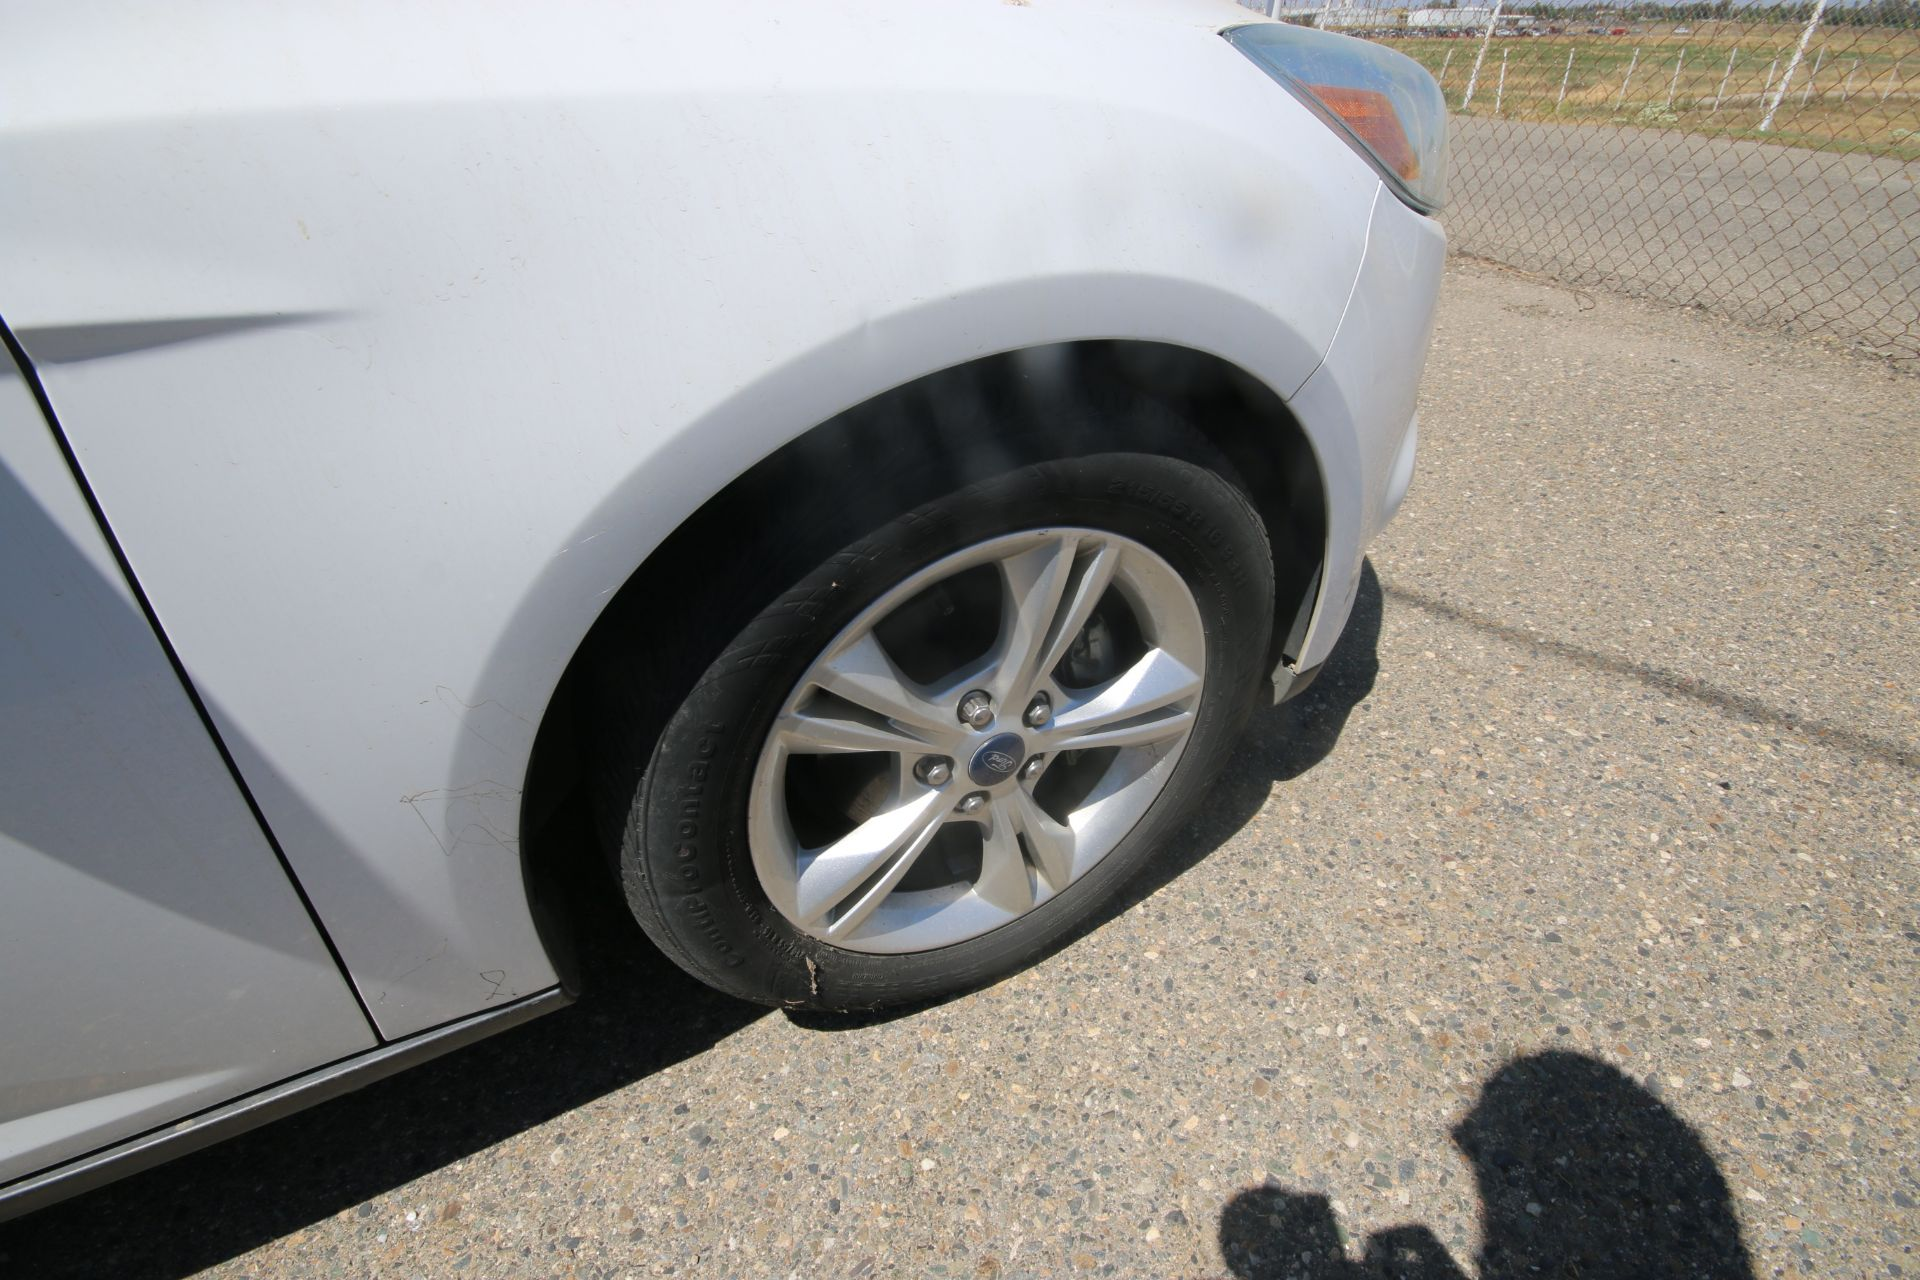 2012 White Ford Focus SE Hatchback 4D, VIN #: 1FAHP3K27CL423326, with 116,017 Miles, with 4-Doors, - Image 17 of 26